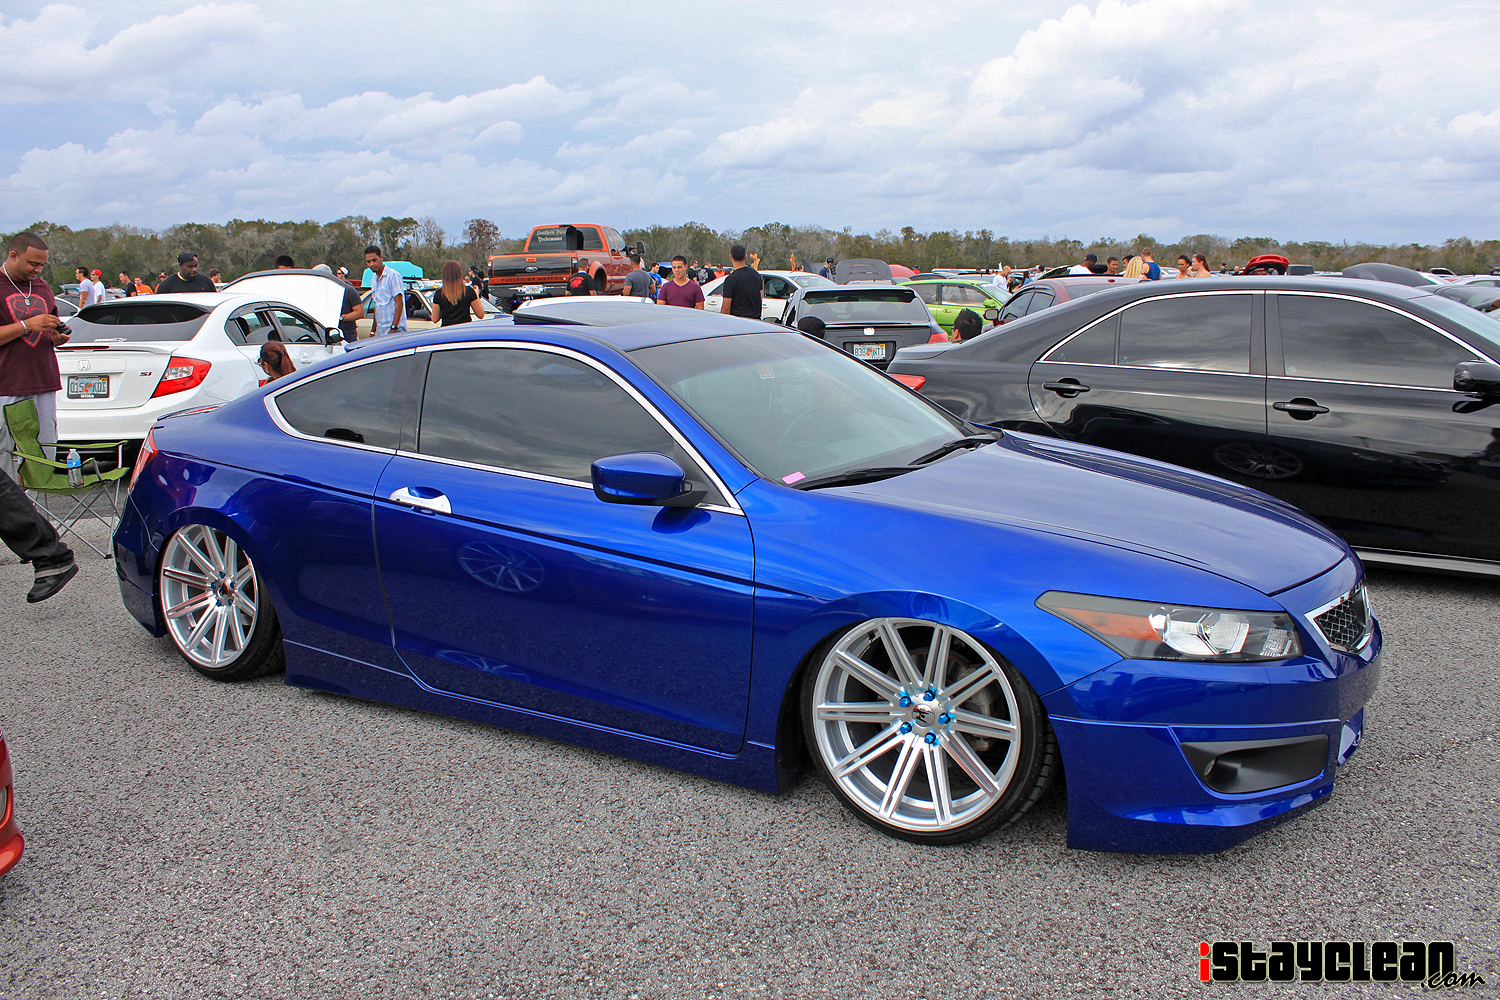 2013 Stanced Accord Coupe | www.galleryhip.com - The ...